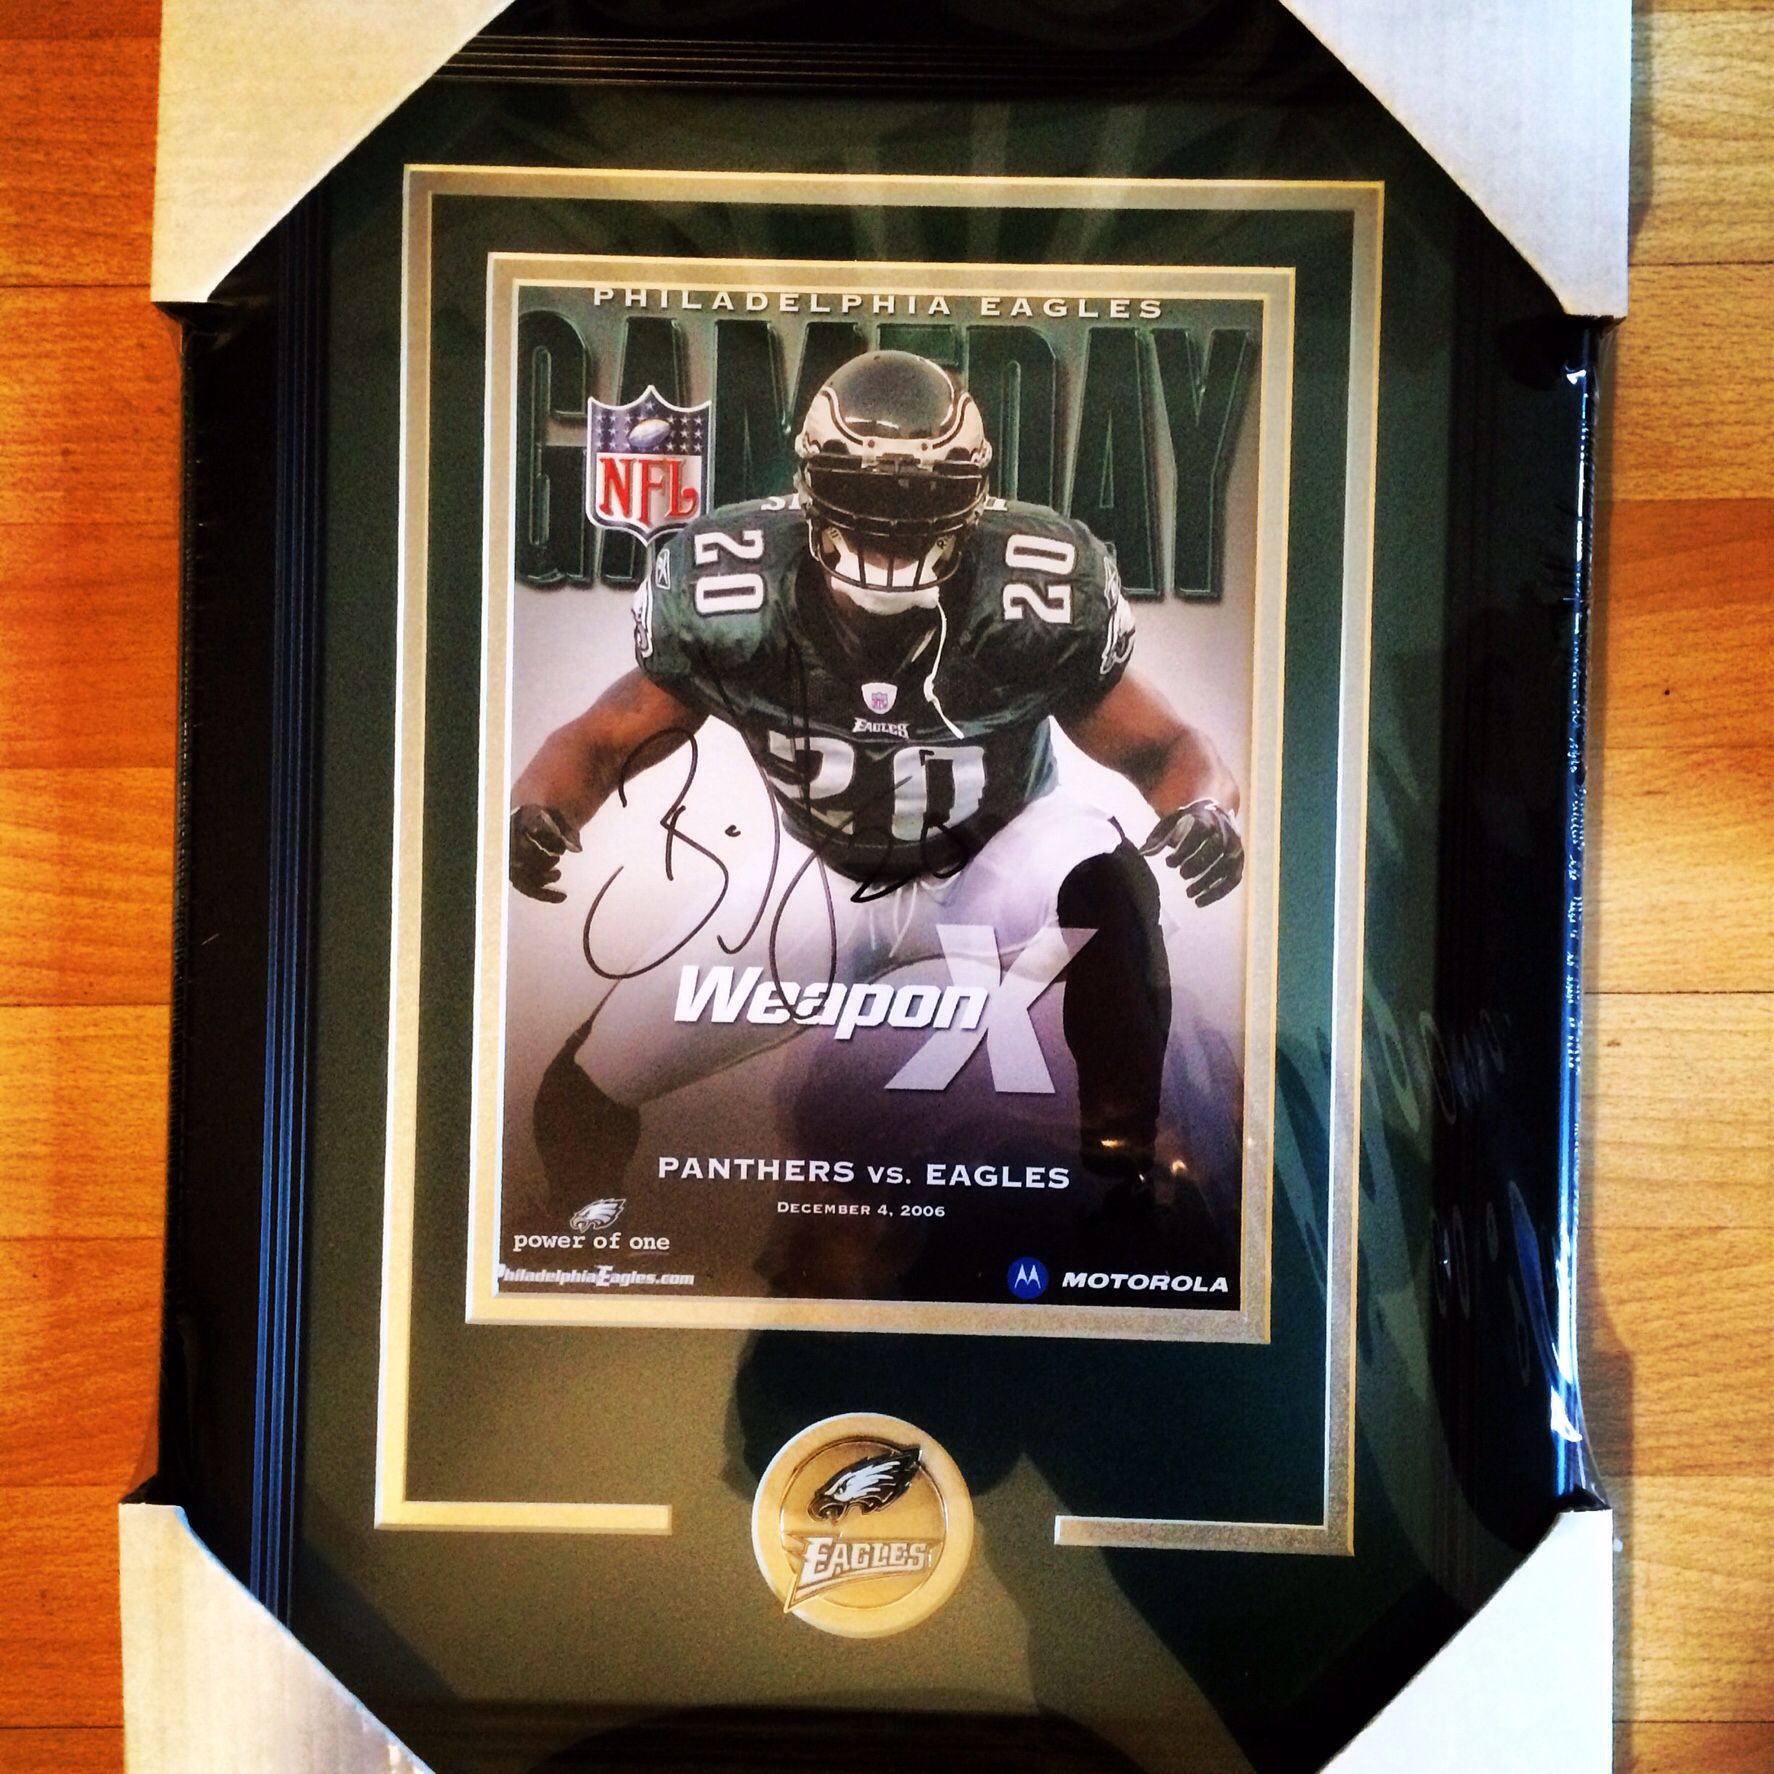 Brian Dawkins  officialeagles signed program. Find this Pin and more on Philadelphia  Eagles by Bucks County Baseball Co. 92d028240